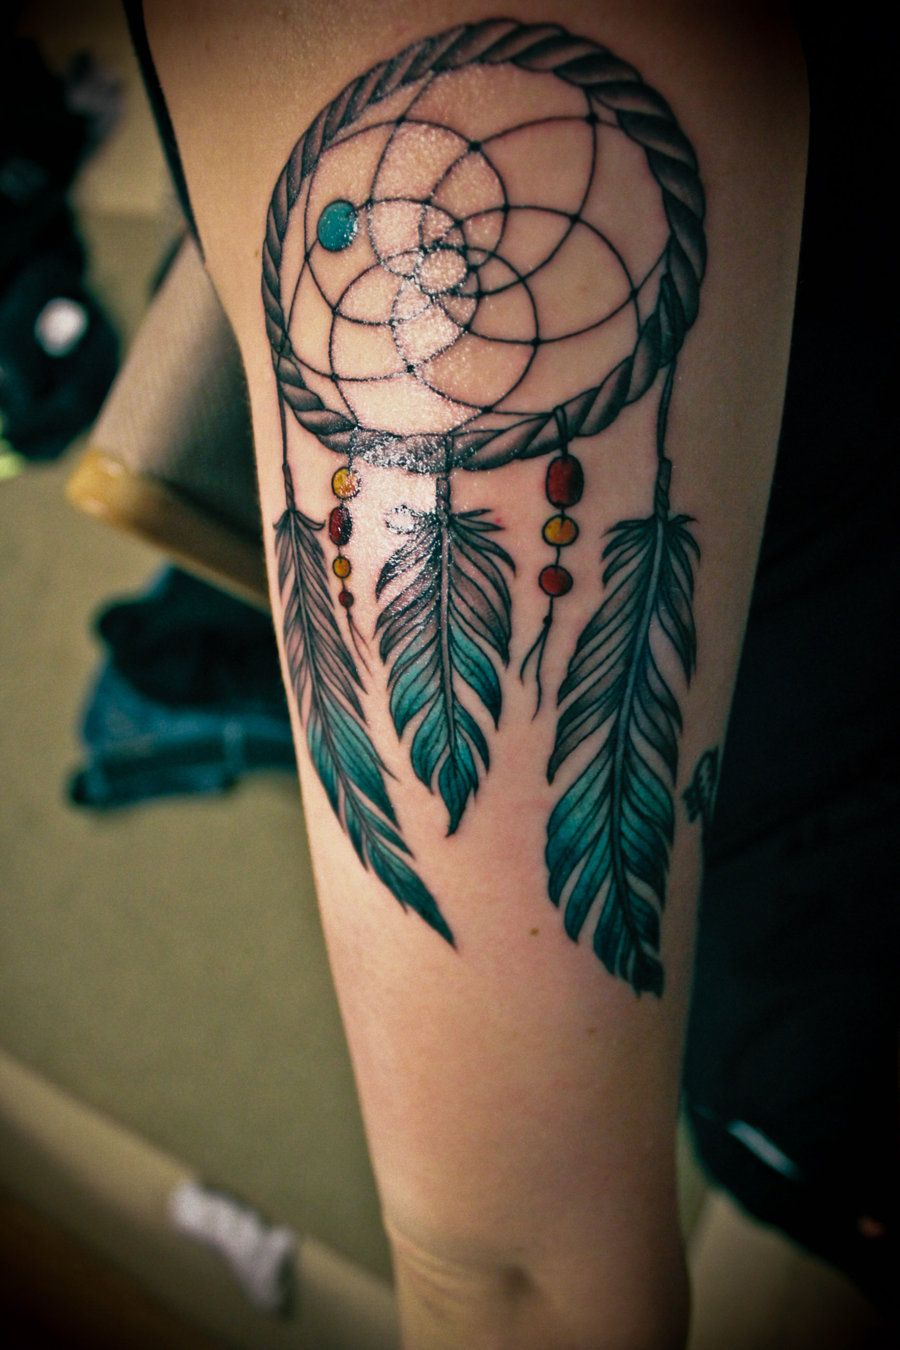 Dream Catcher Tattoo On Arm Classy 35 Awesome Dreamcatcher Tattoos And Meanings  Pinterest  Dream Inspiration